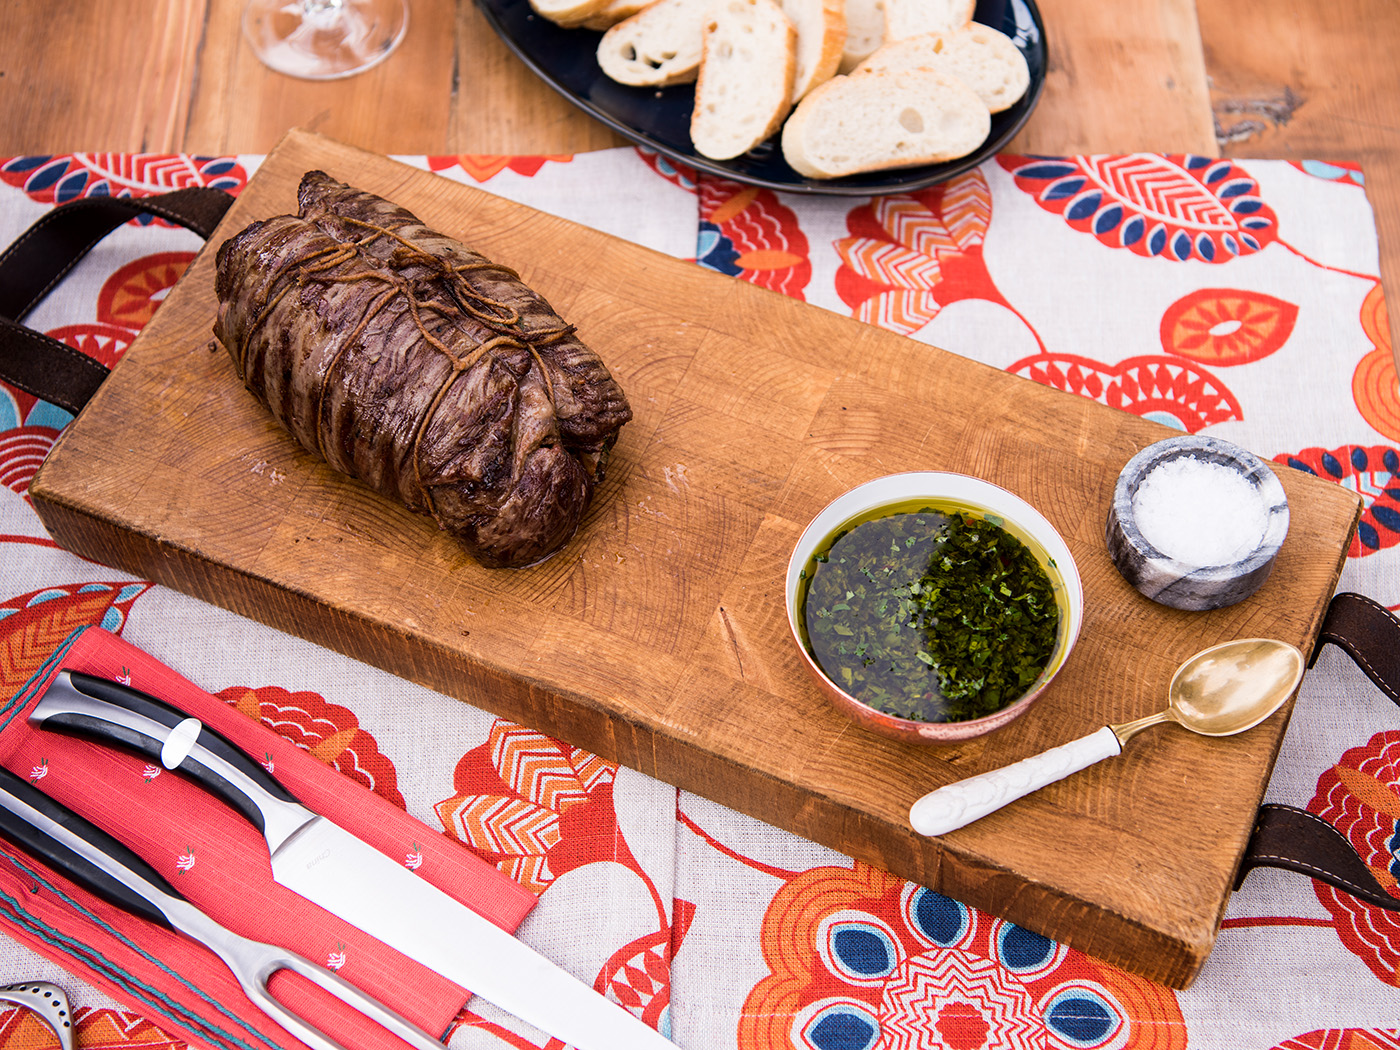 Deborah_Farnault_Food_Network_How-To-Win-Summer-Matambre-with-Chimichurri-Sauce-4x3-0325.jpg